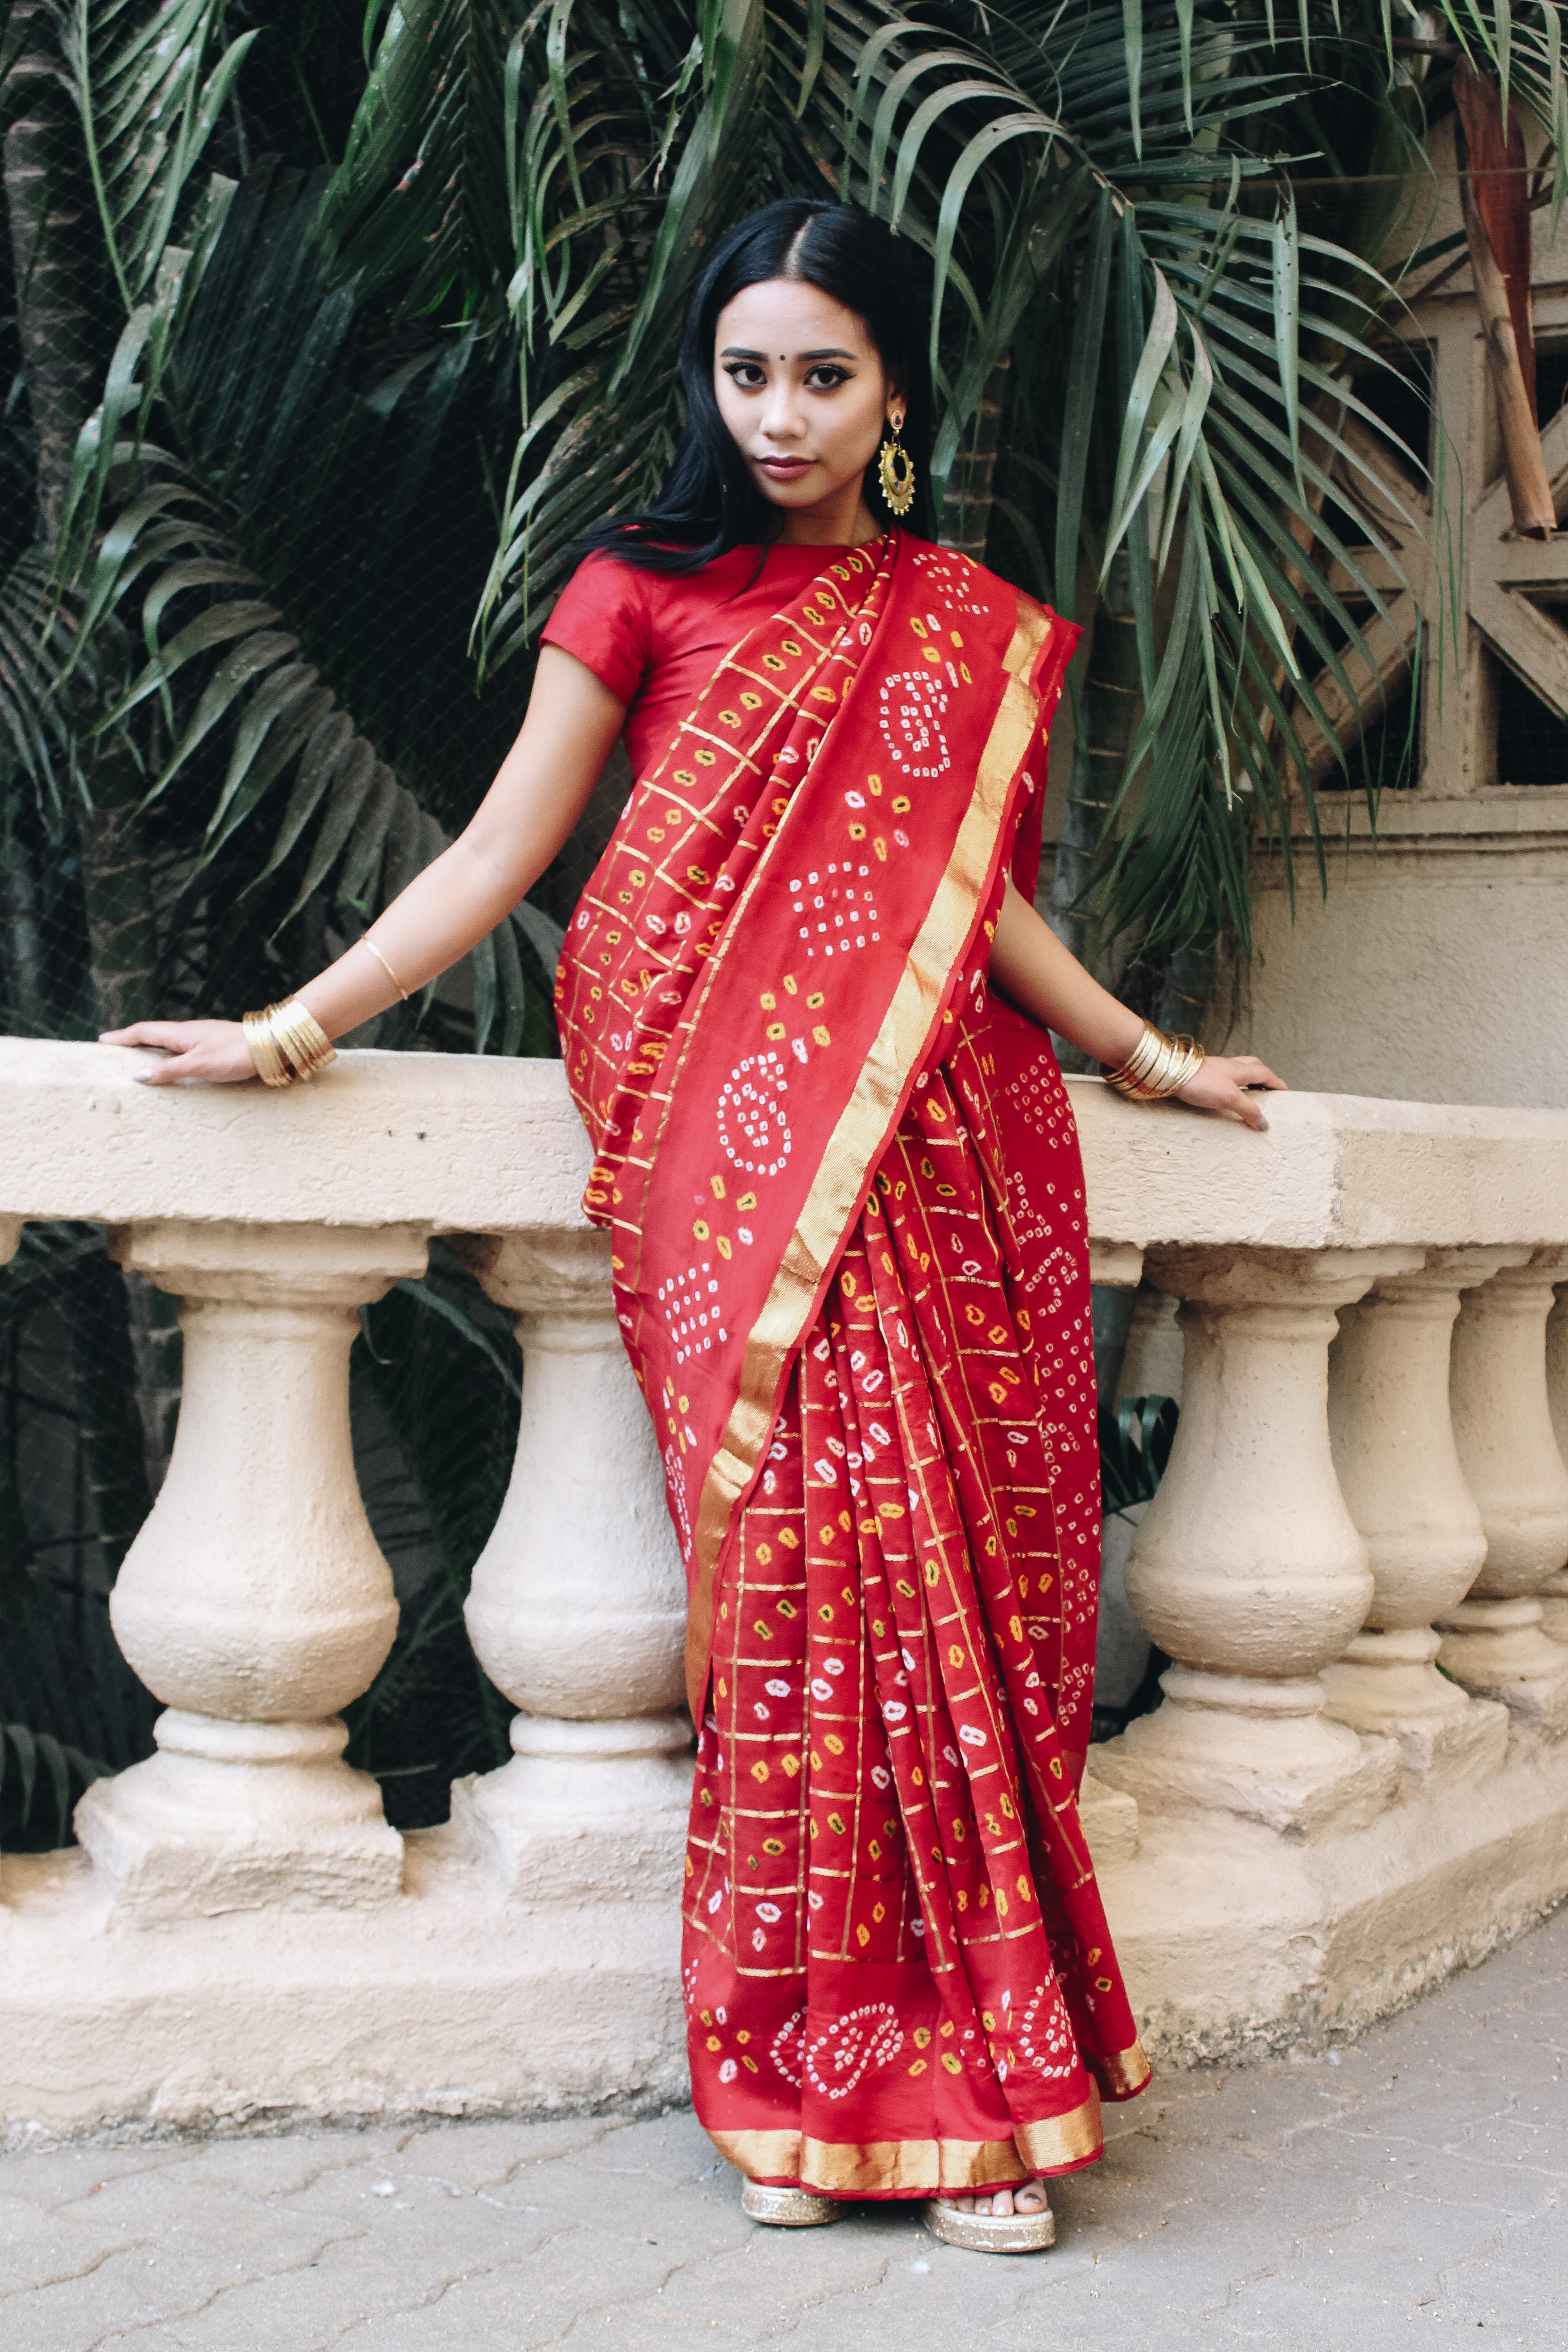 Lulu Meets World Professional Travel Blogger Fashion Ethnic Wear Sari Mumbai India Hiranandani Gardens